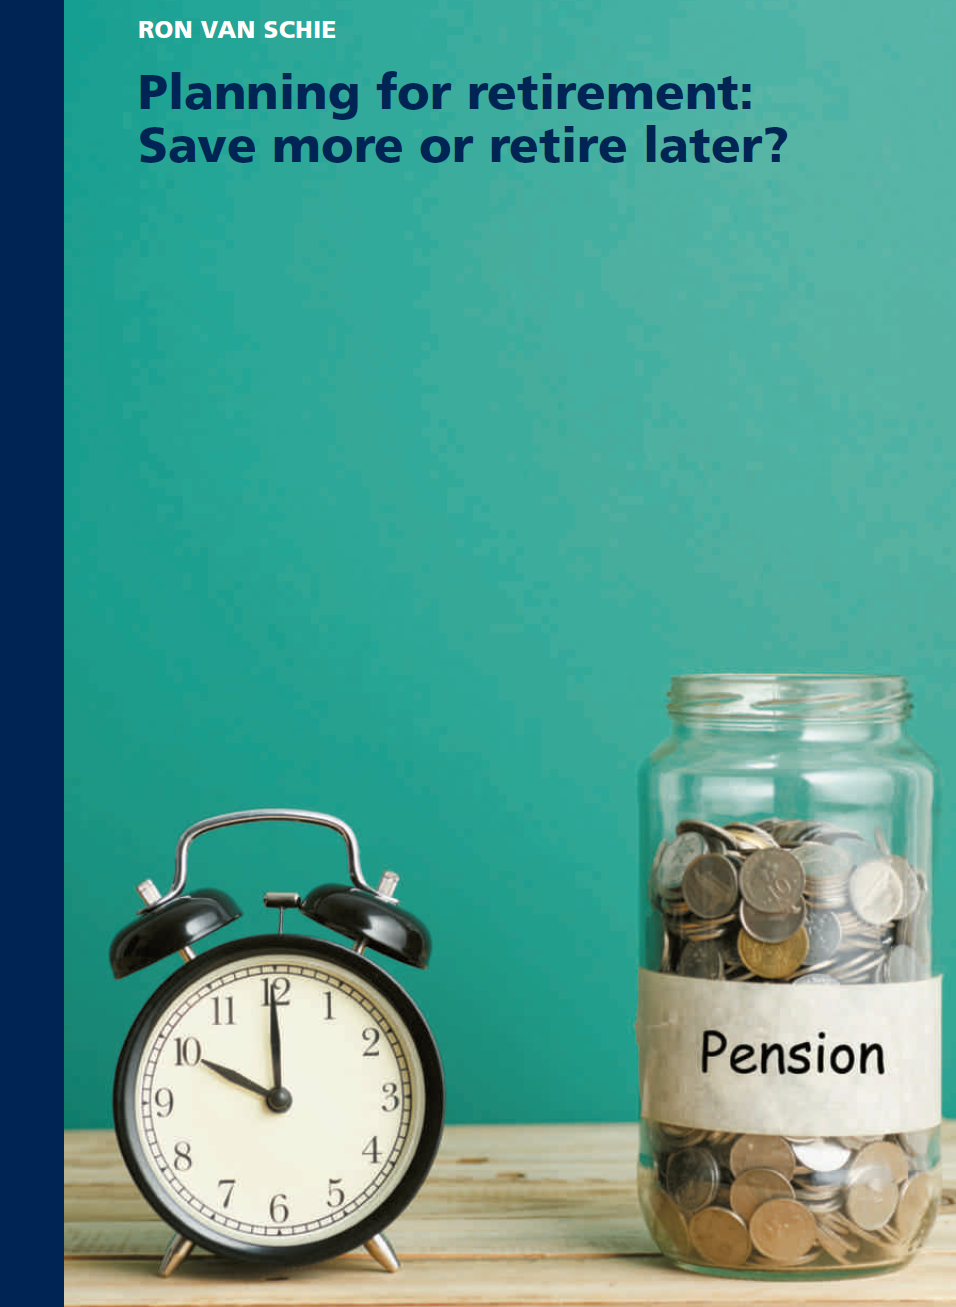 Planning for retirement: Save more or retire later?